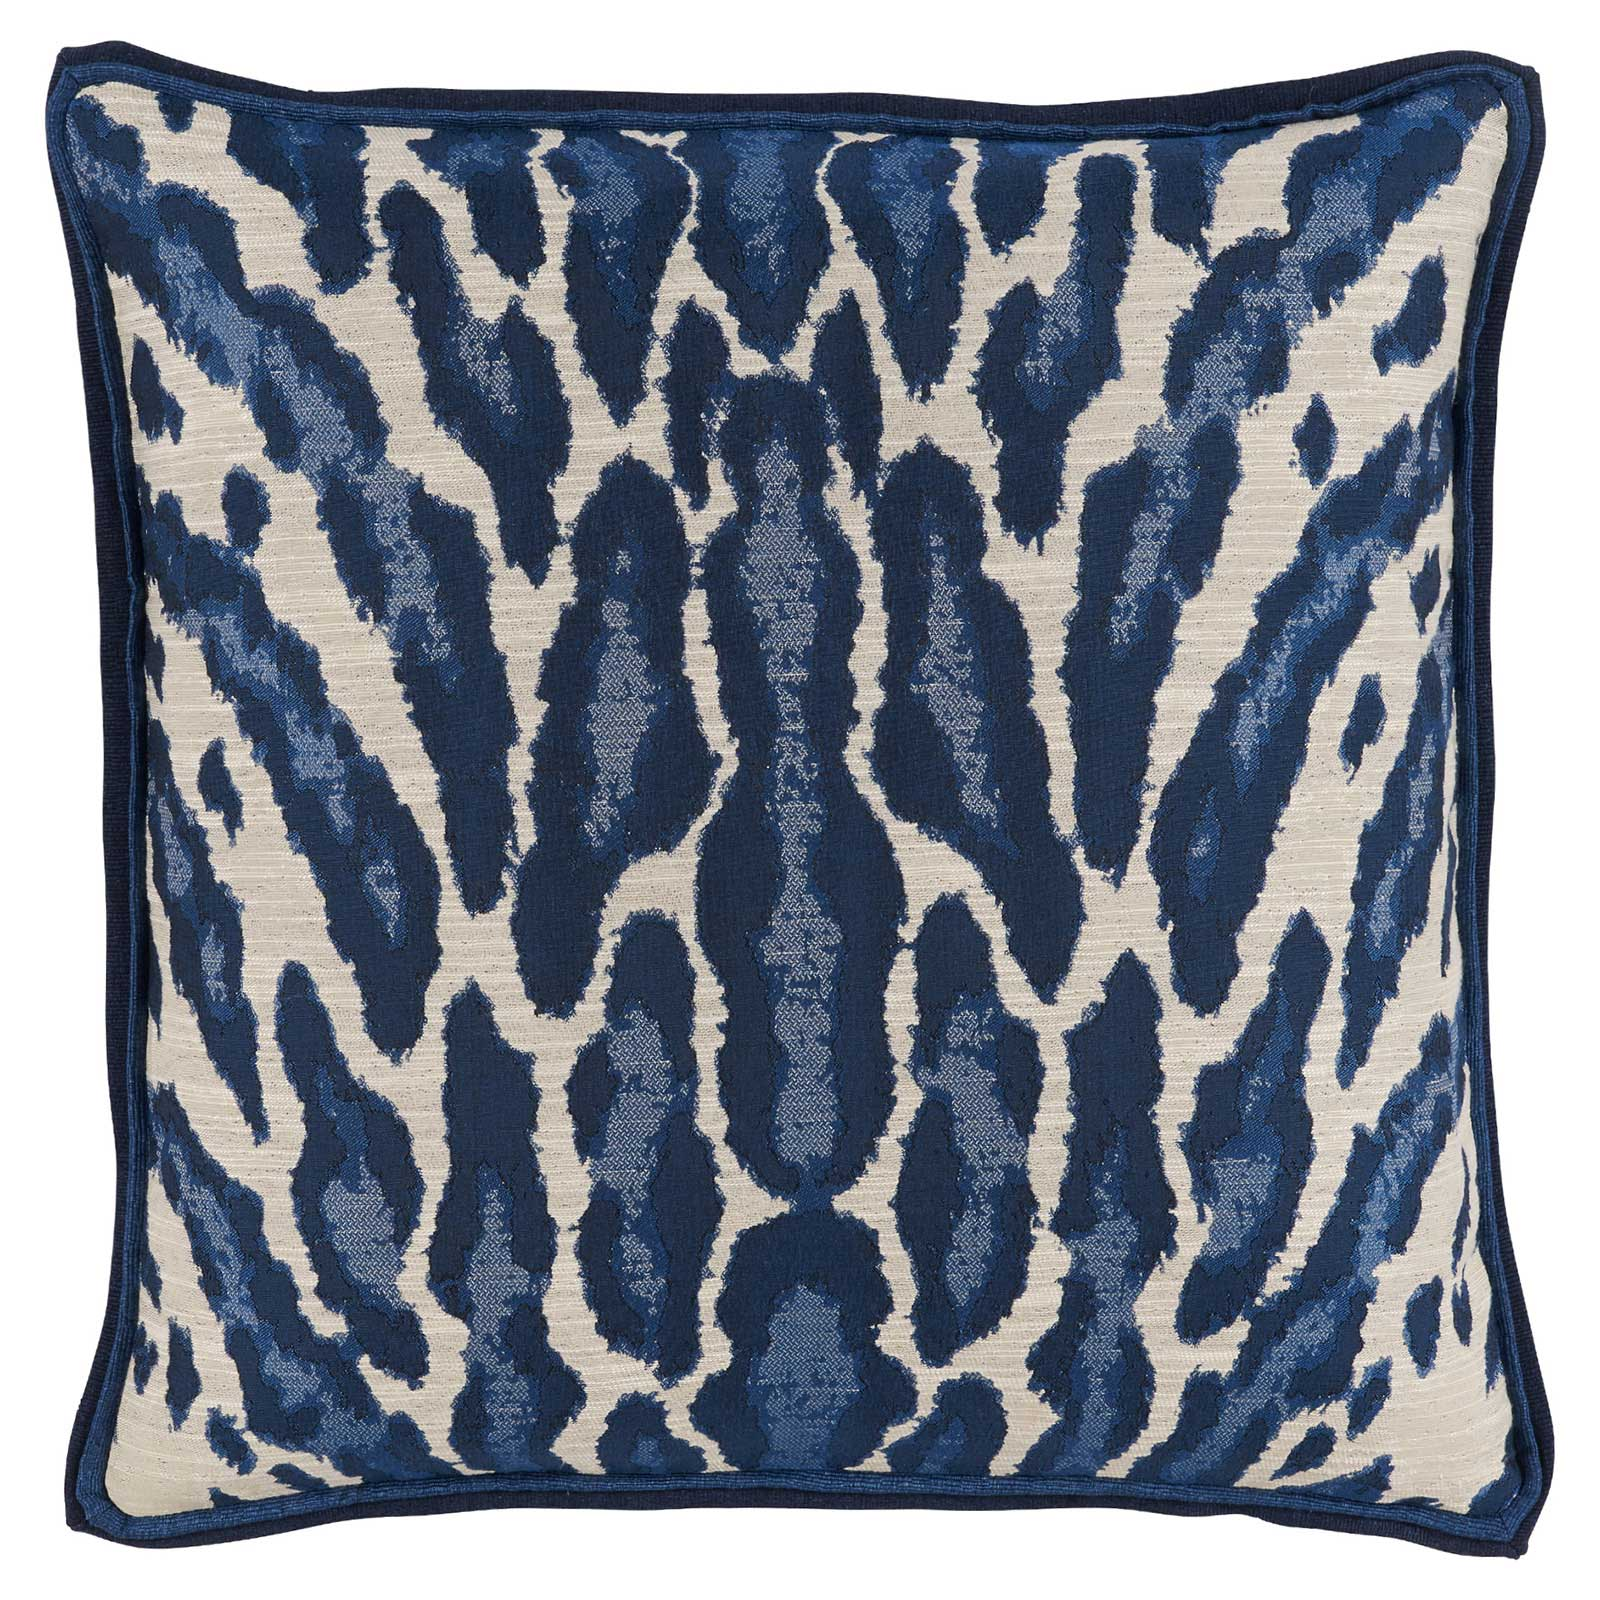 Vivy Global Regency Abstract Leopard Print Navy Pillow - 22x22